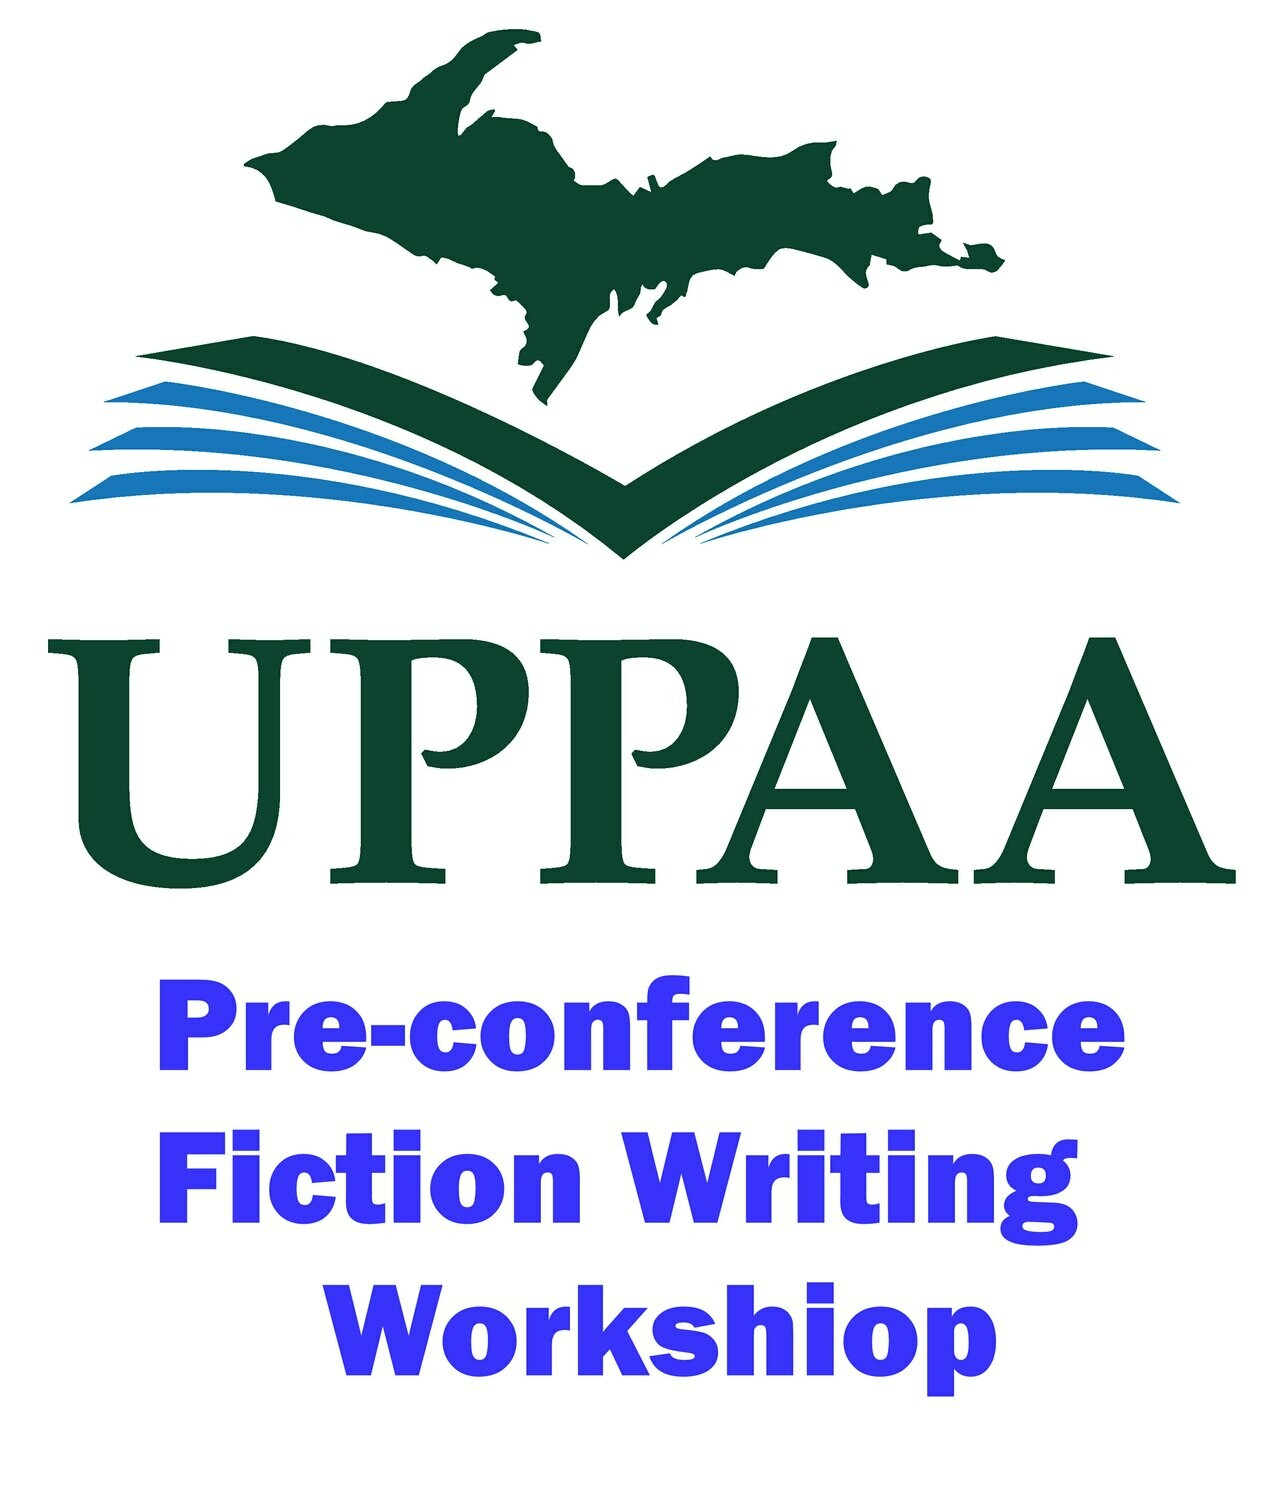 UPPAA Fiction Writing Workshop